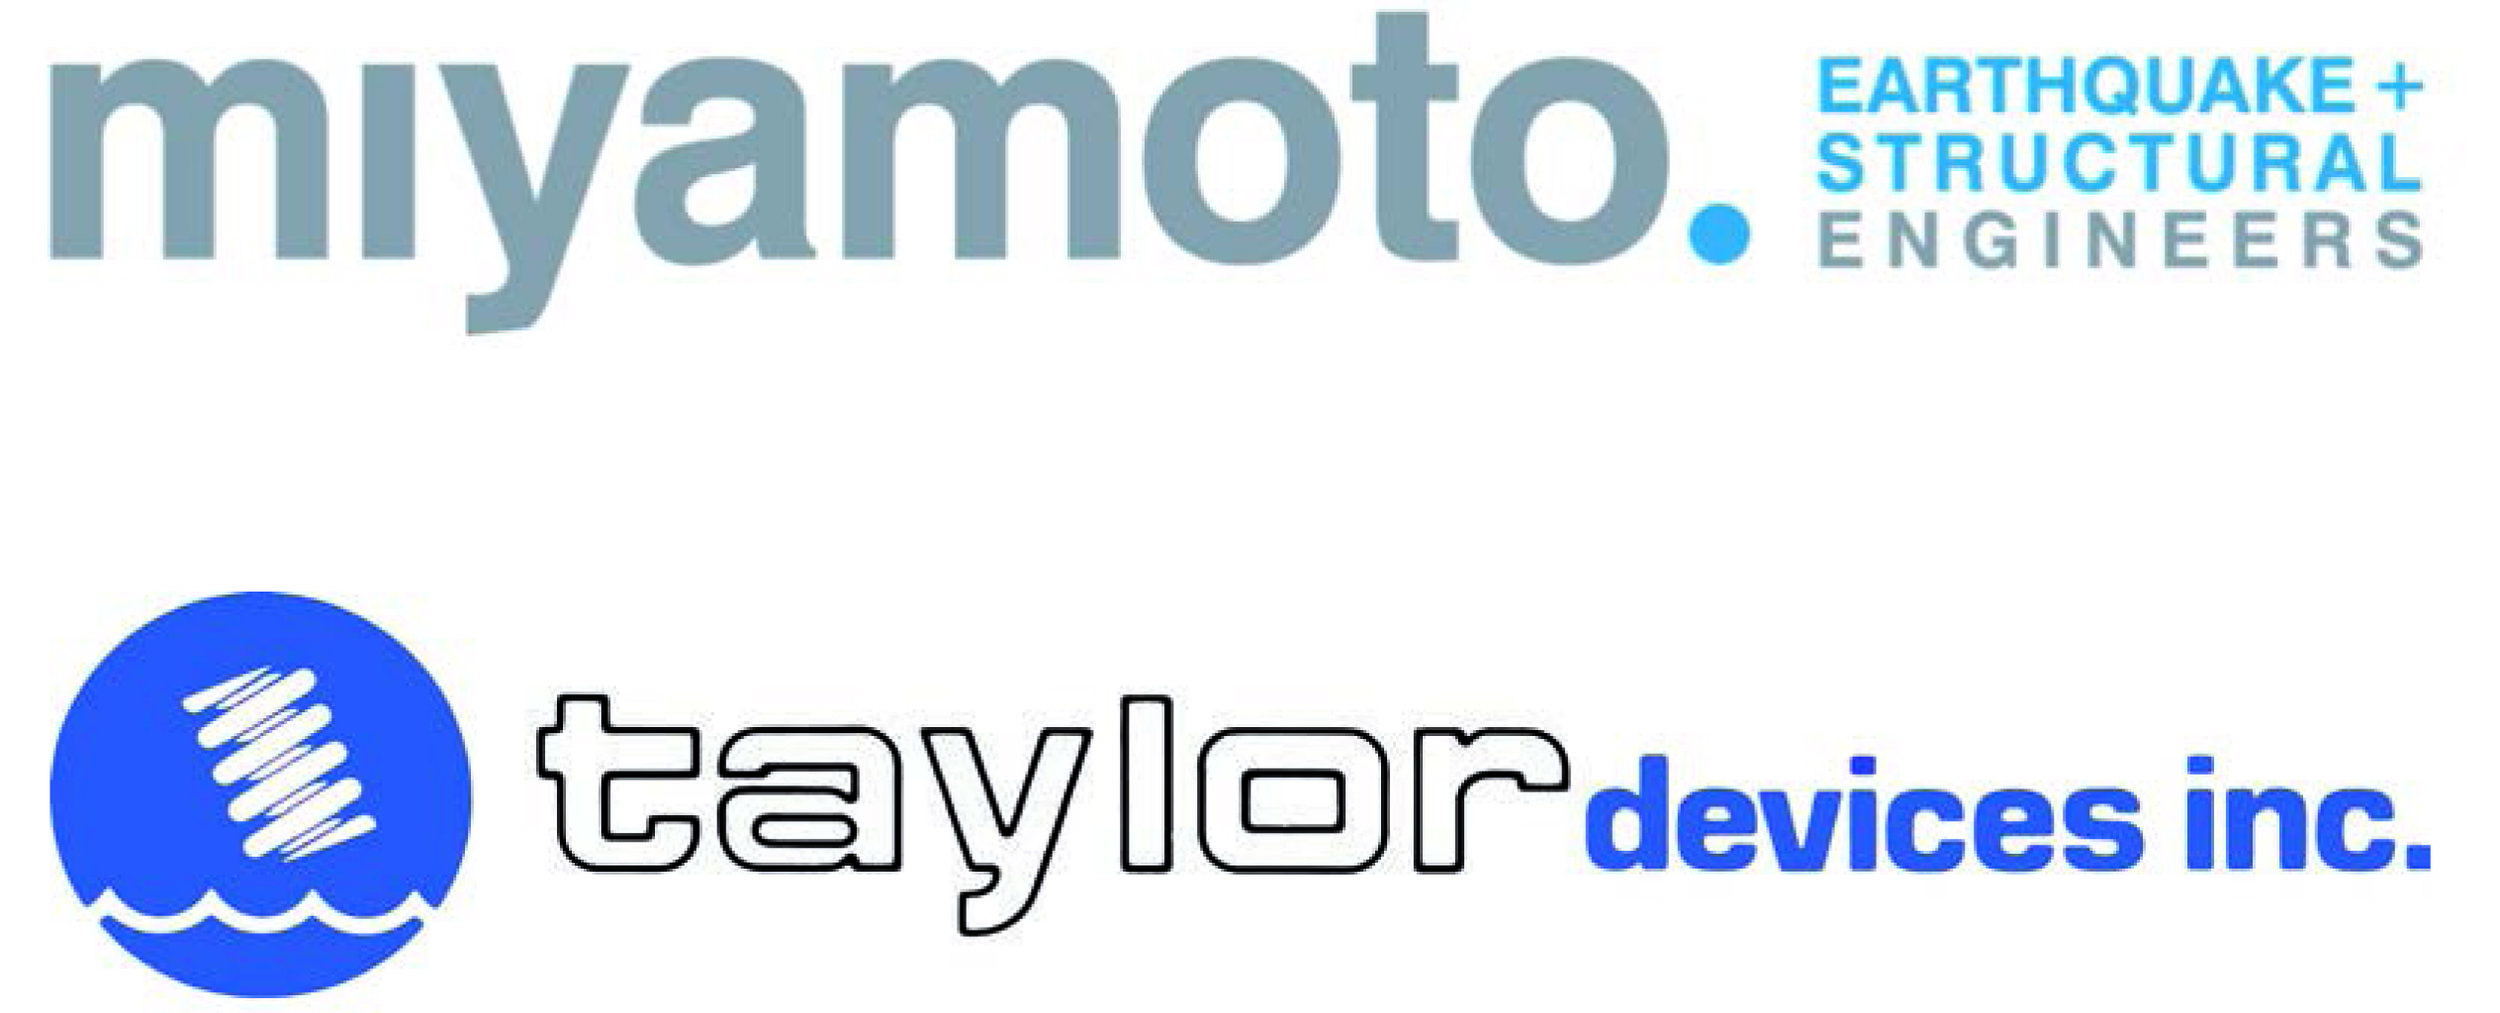 miyamotointernational.com - please click on the image to discover more